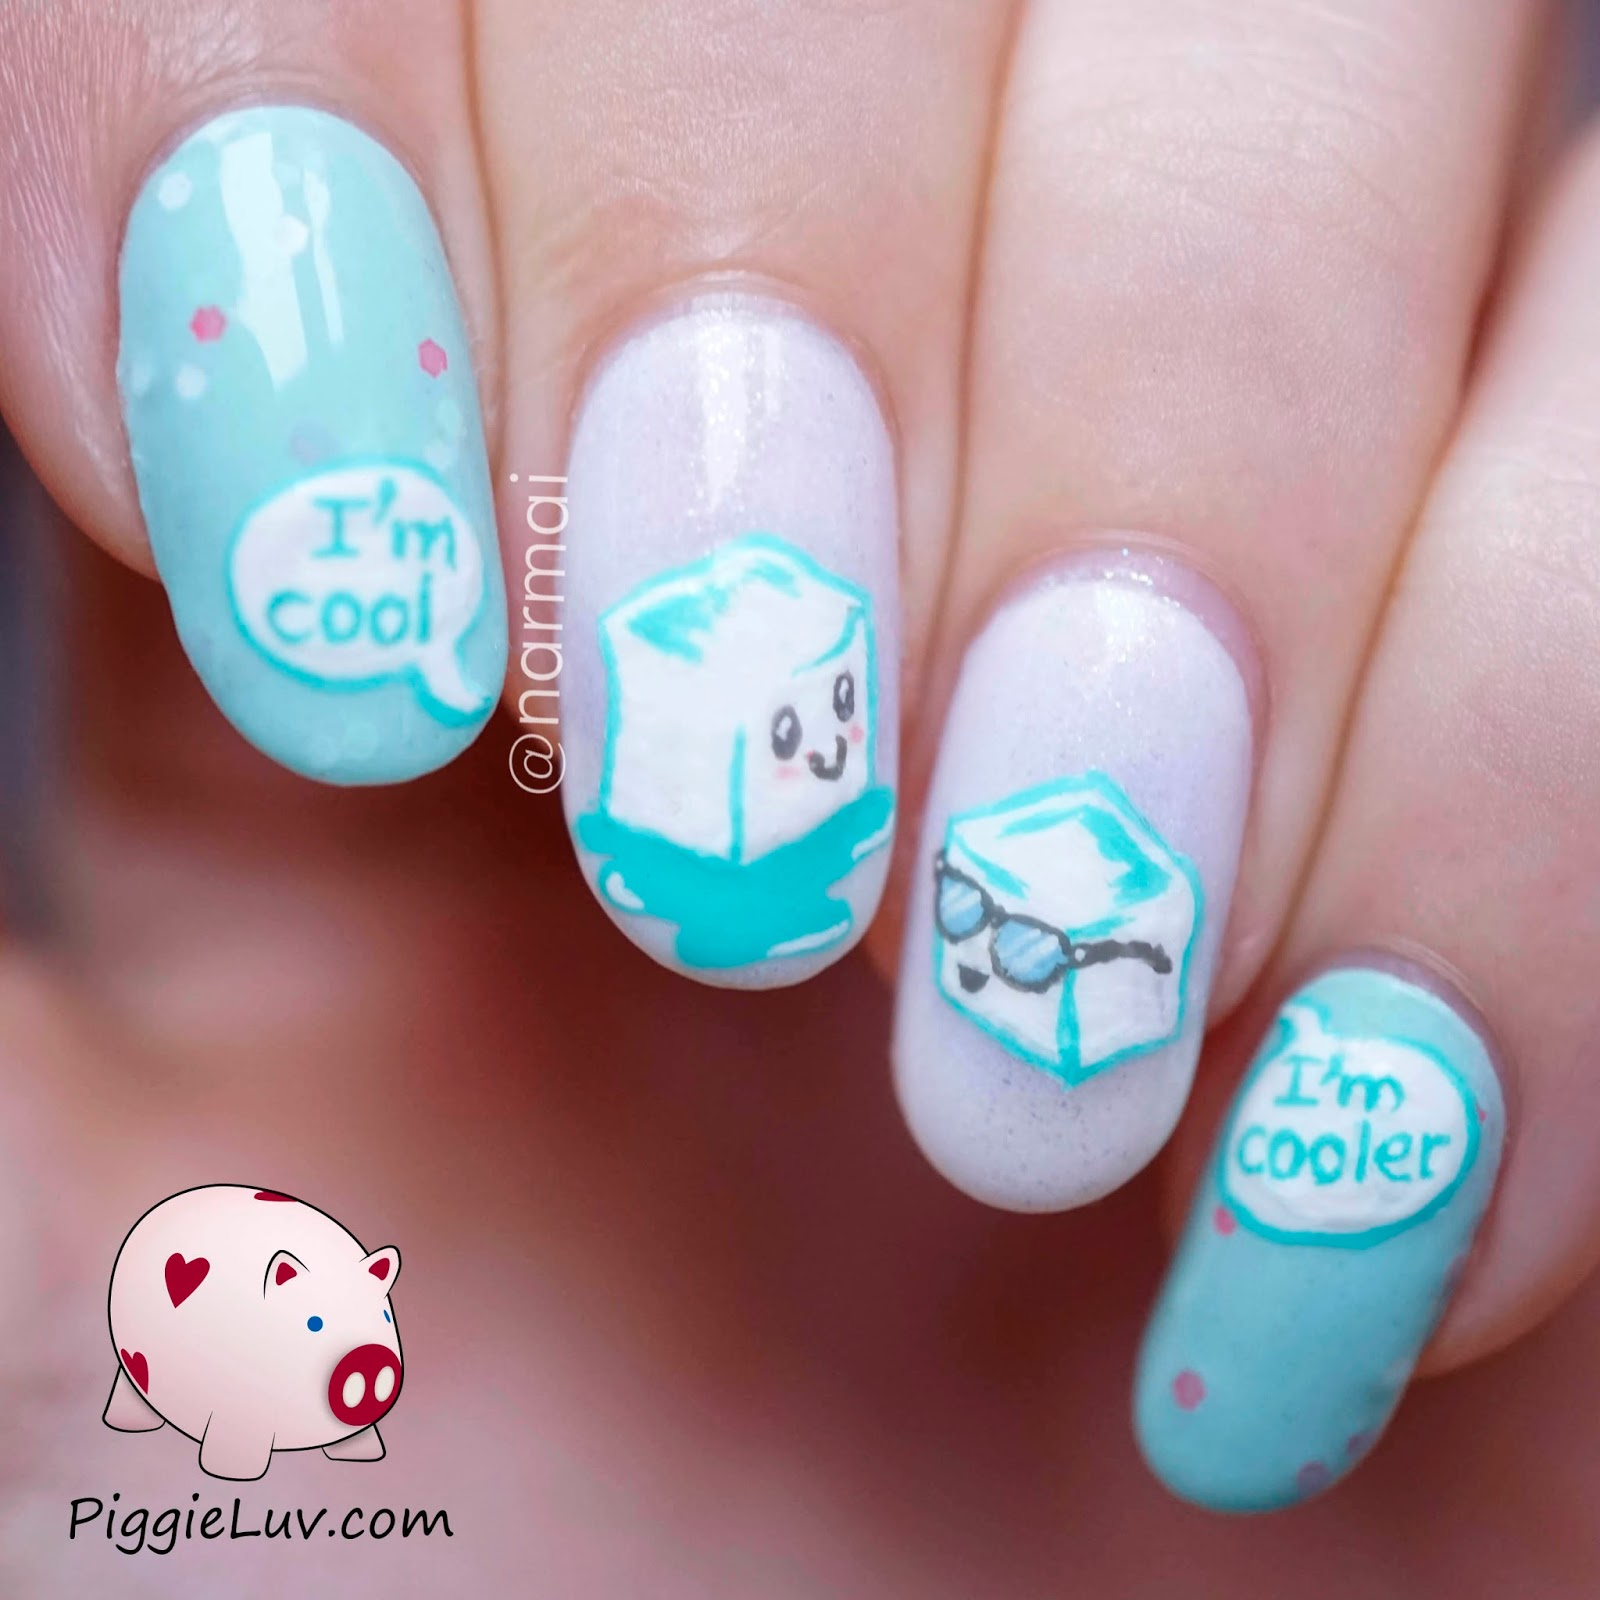 Piggieluv ice ice baby cool ice cubes nail art than being cool ice cold just some ice cubes chilling here the one with the sunglasses has upped the coolness factor see the perfect cute nail art prinsesfo Images